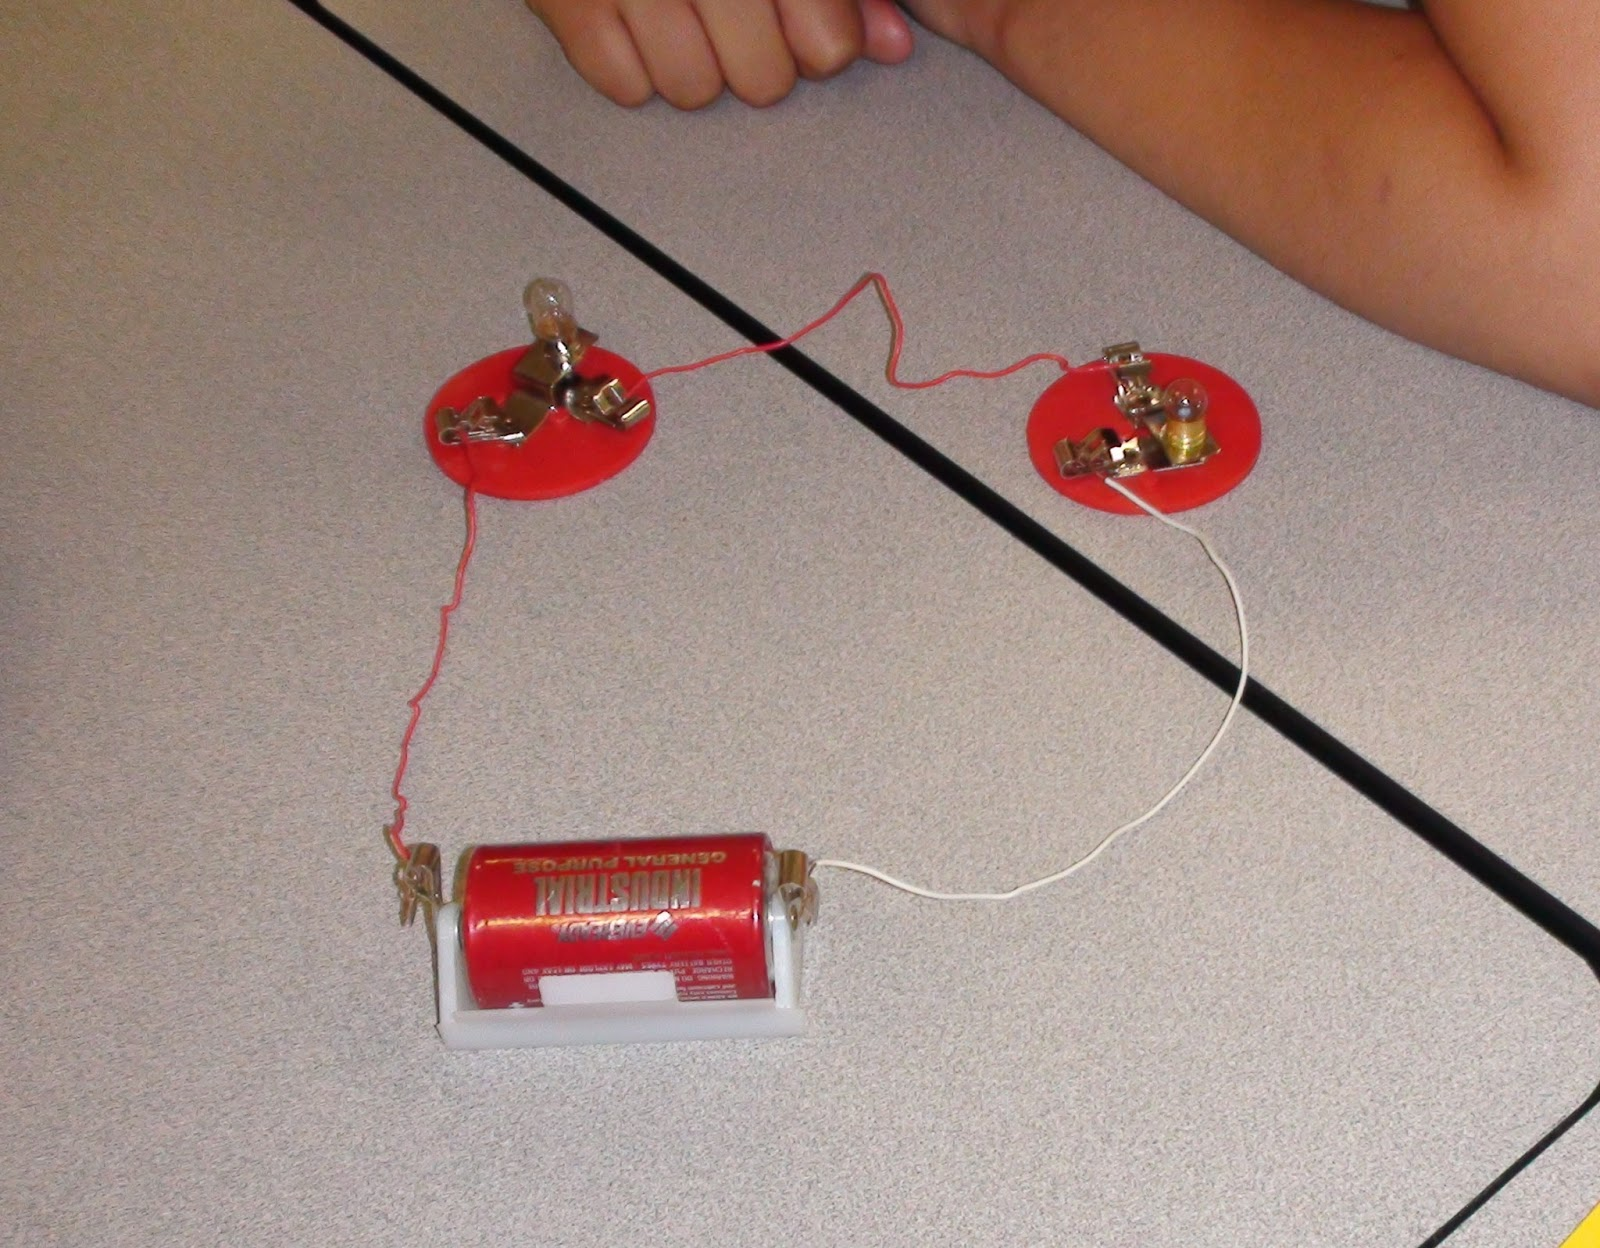 hight resolution of every student group was successful in getting their circuits to work properly they started out